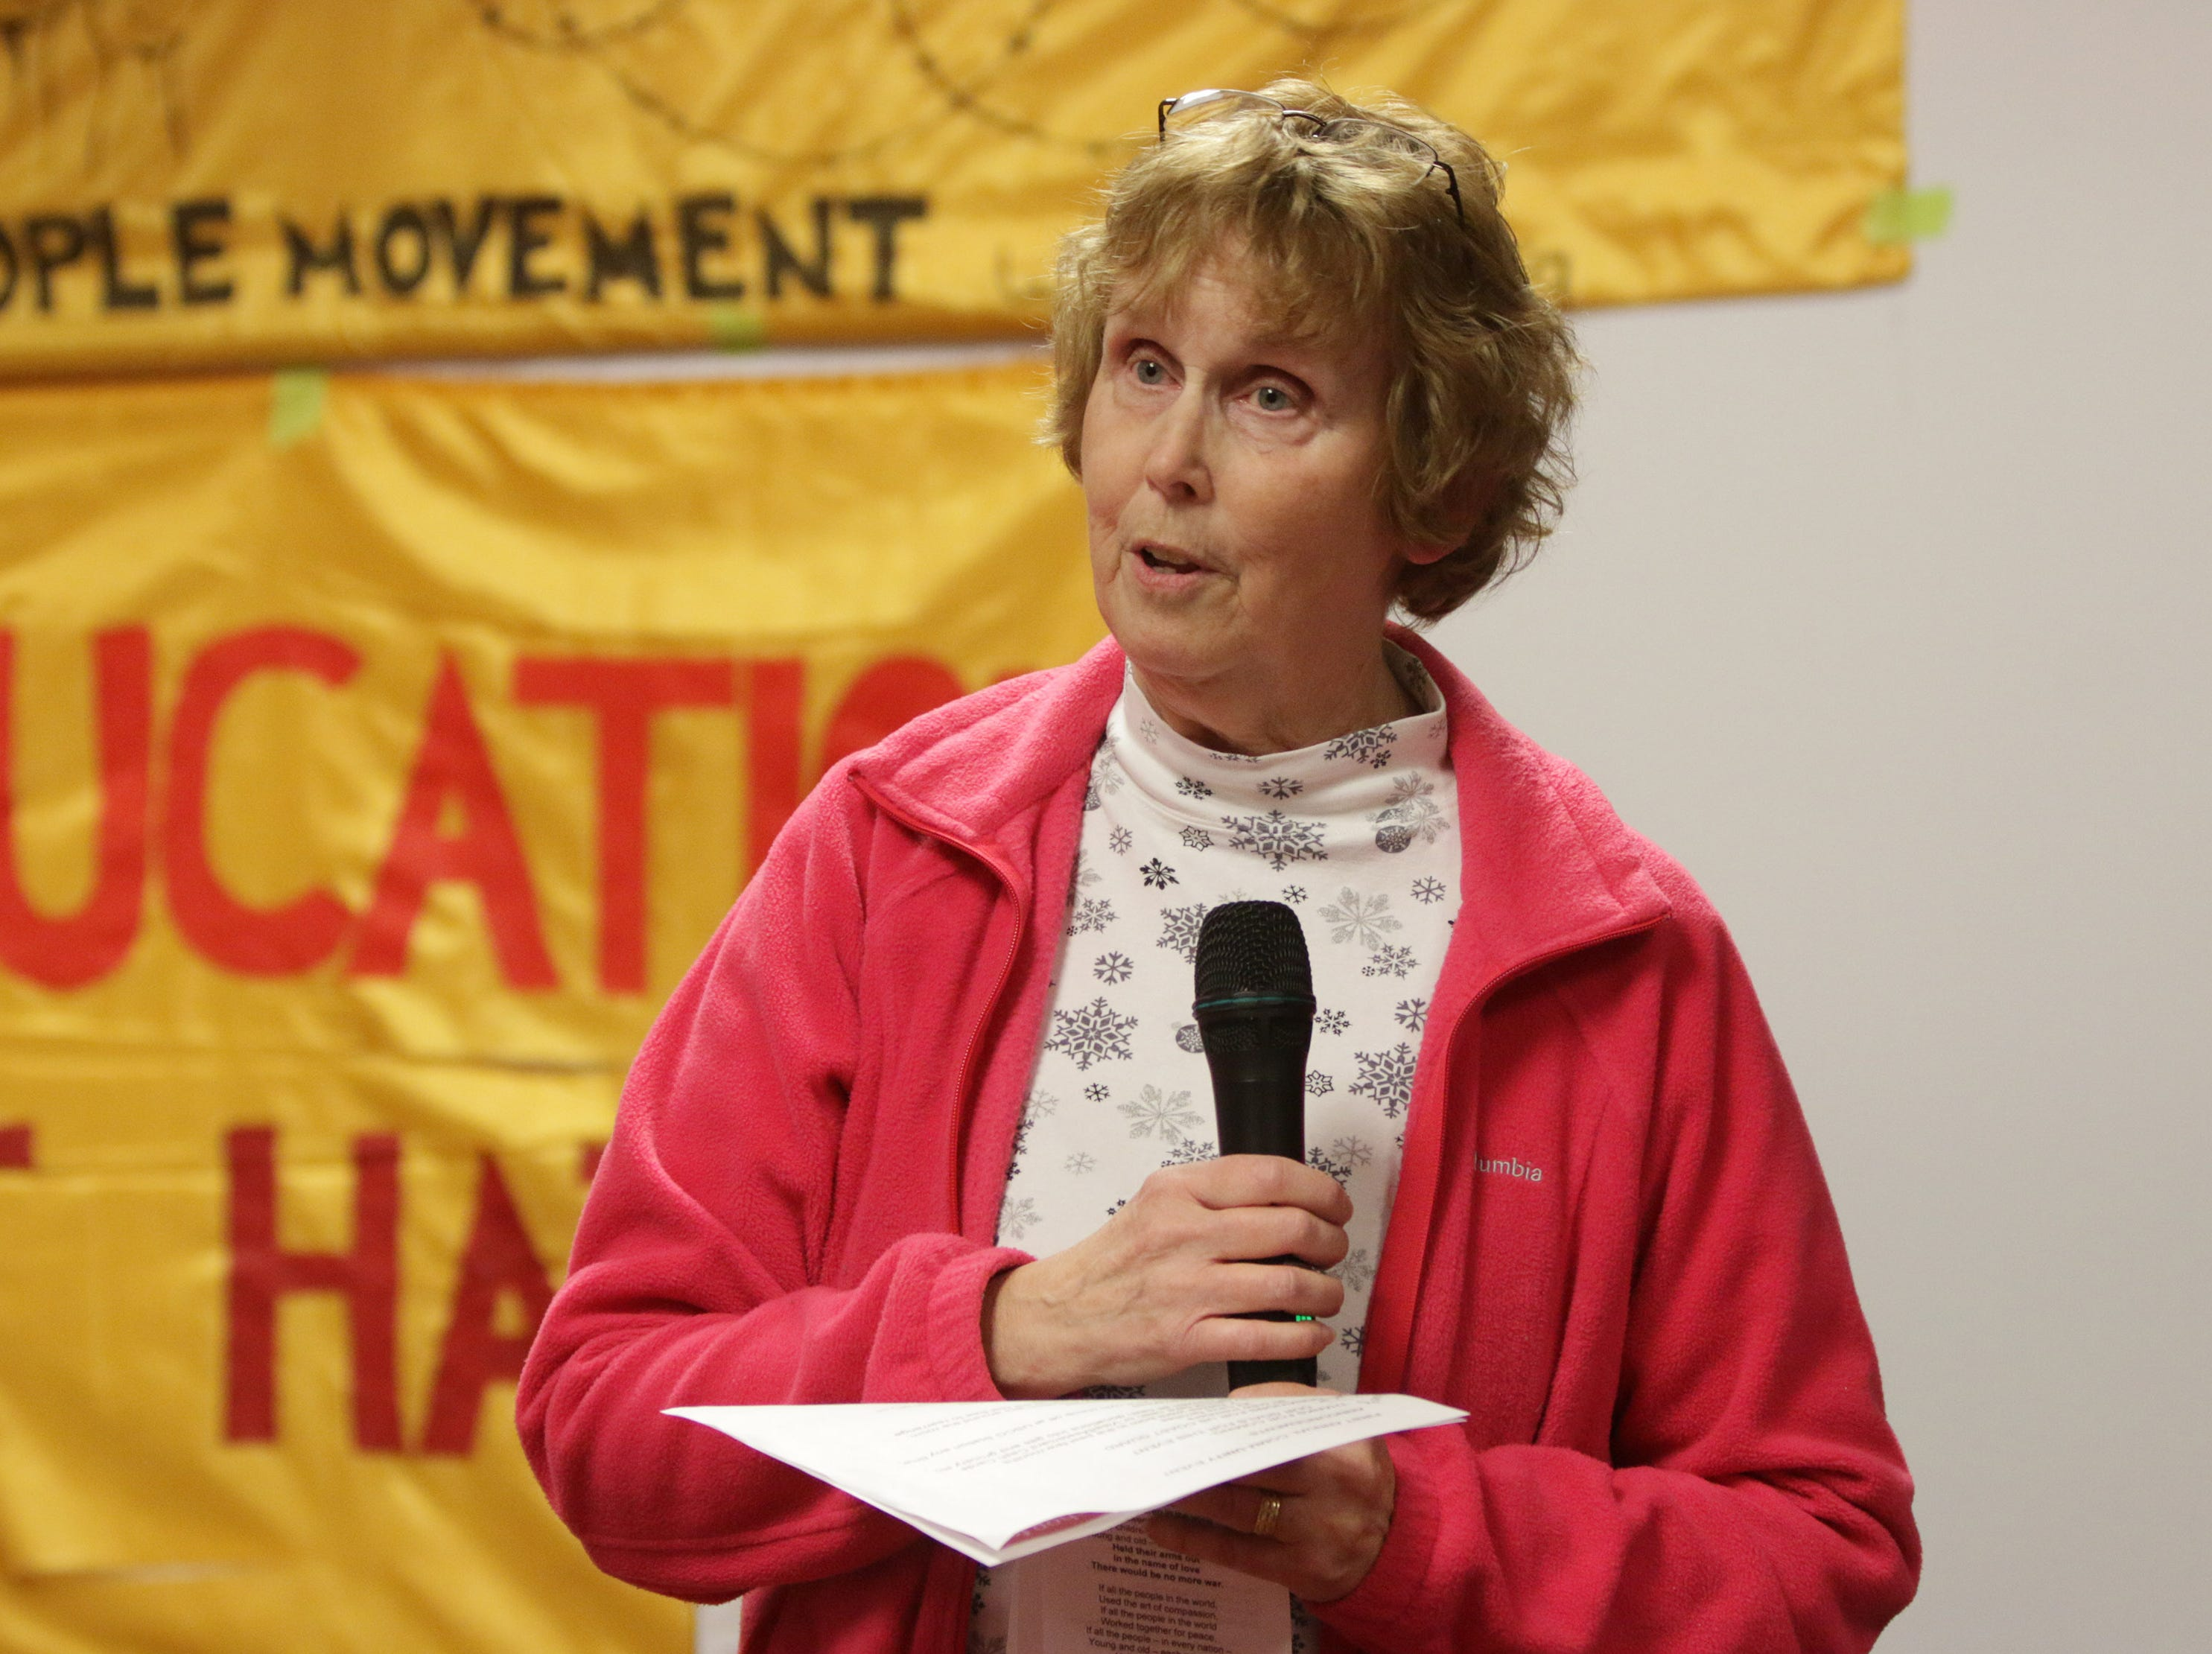 Mary Koczan, organizer of the Sheboygan Community Event speaks, Saturday, January 19, 2019, in Sheboygan, Wis.  The event focused on human rights, immigration, economic justice and drug abuse issues.